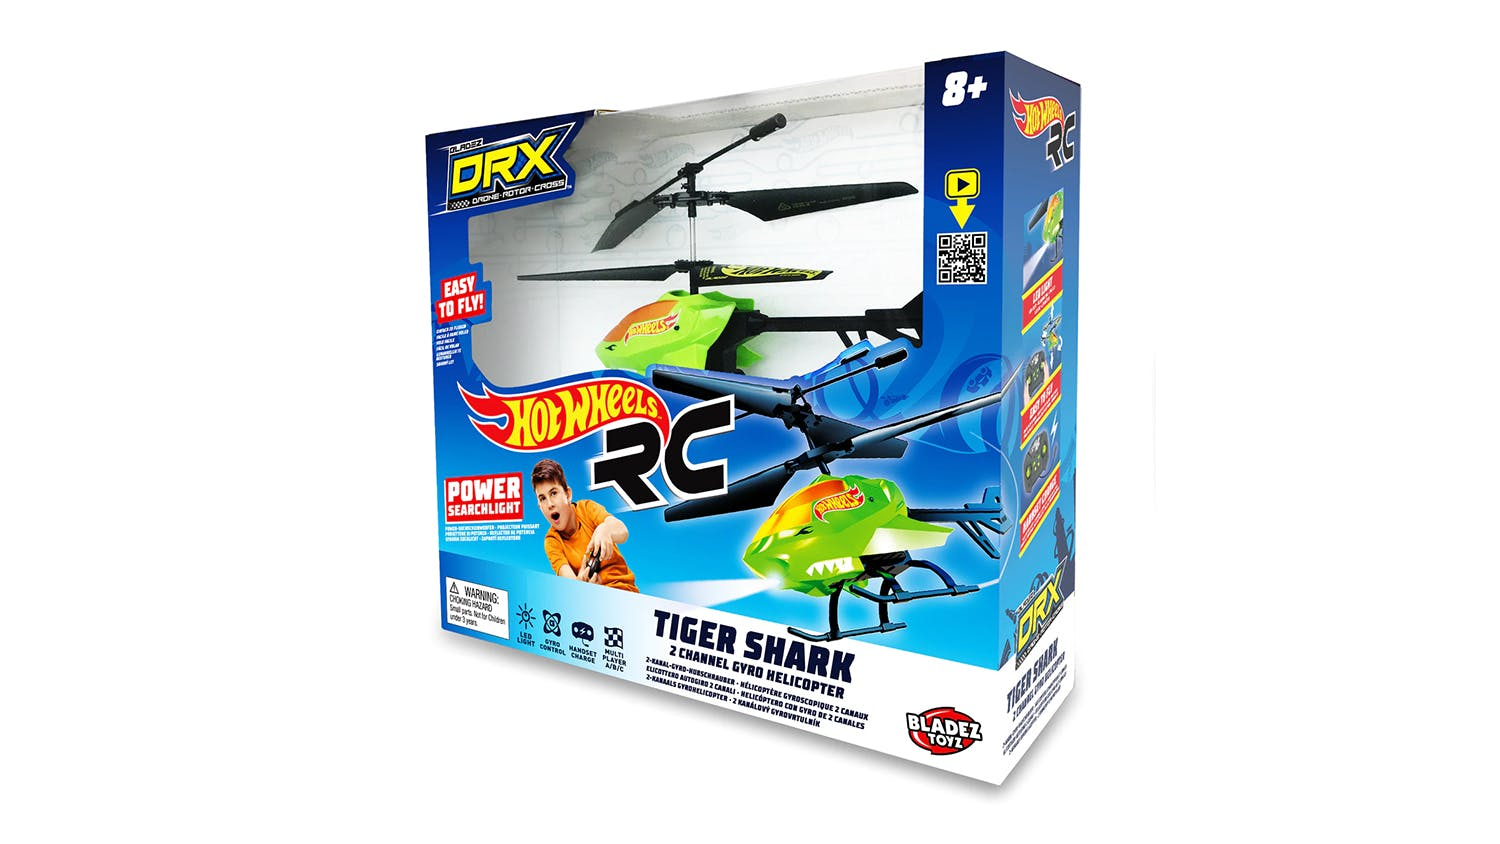 Hot Wheels DRX Tiger Shark RC Helicopter